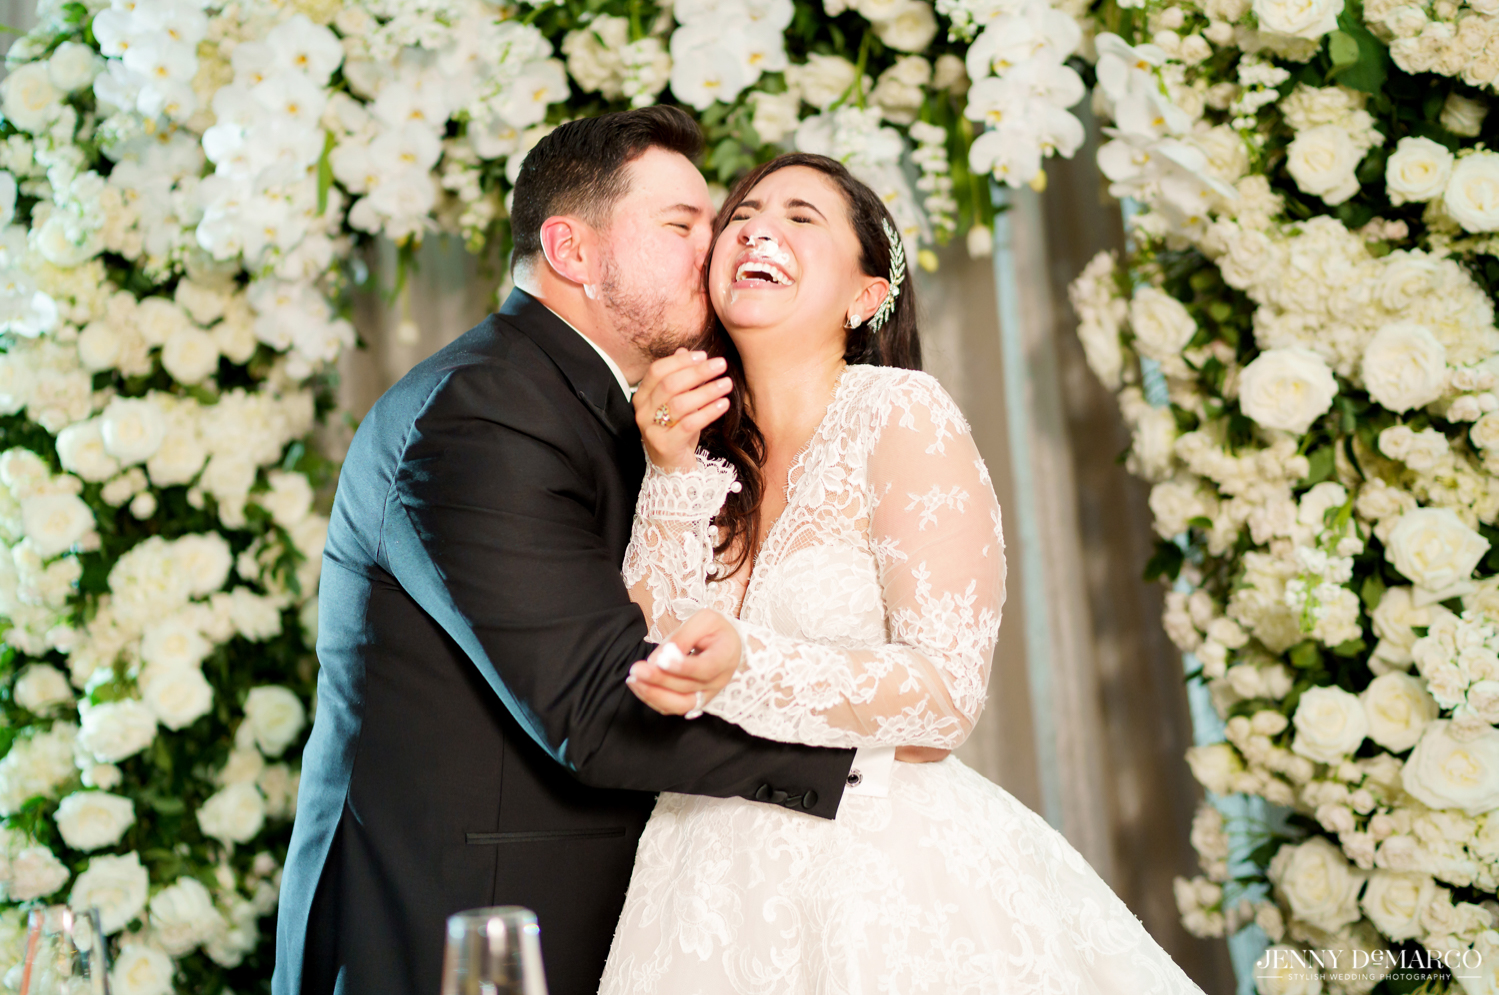 groom shoving cake on the brides face while she laughs